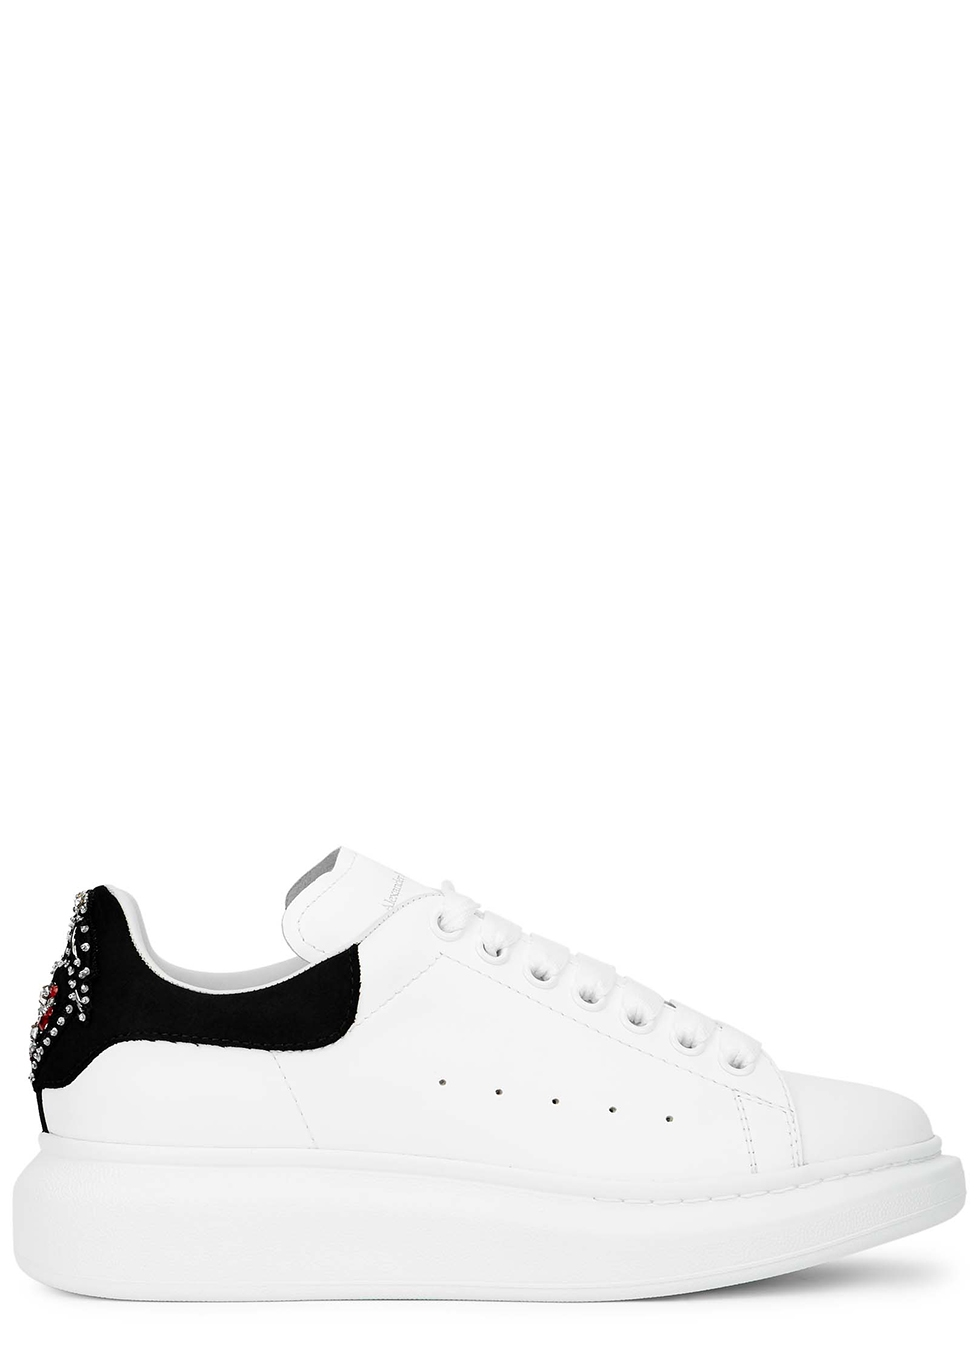 Larry white leather sneakers